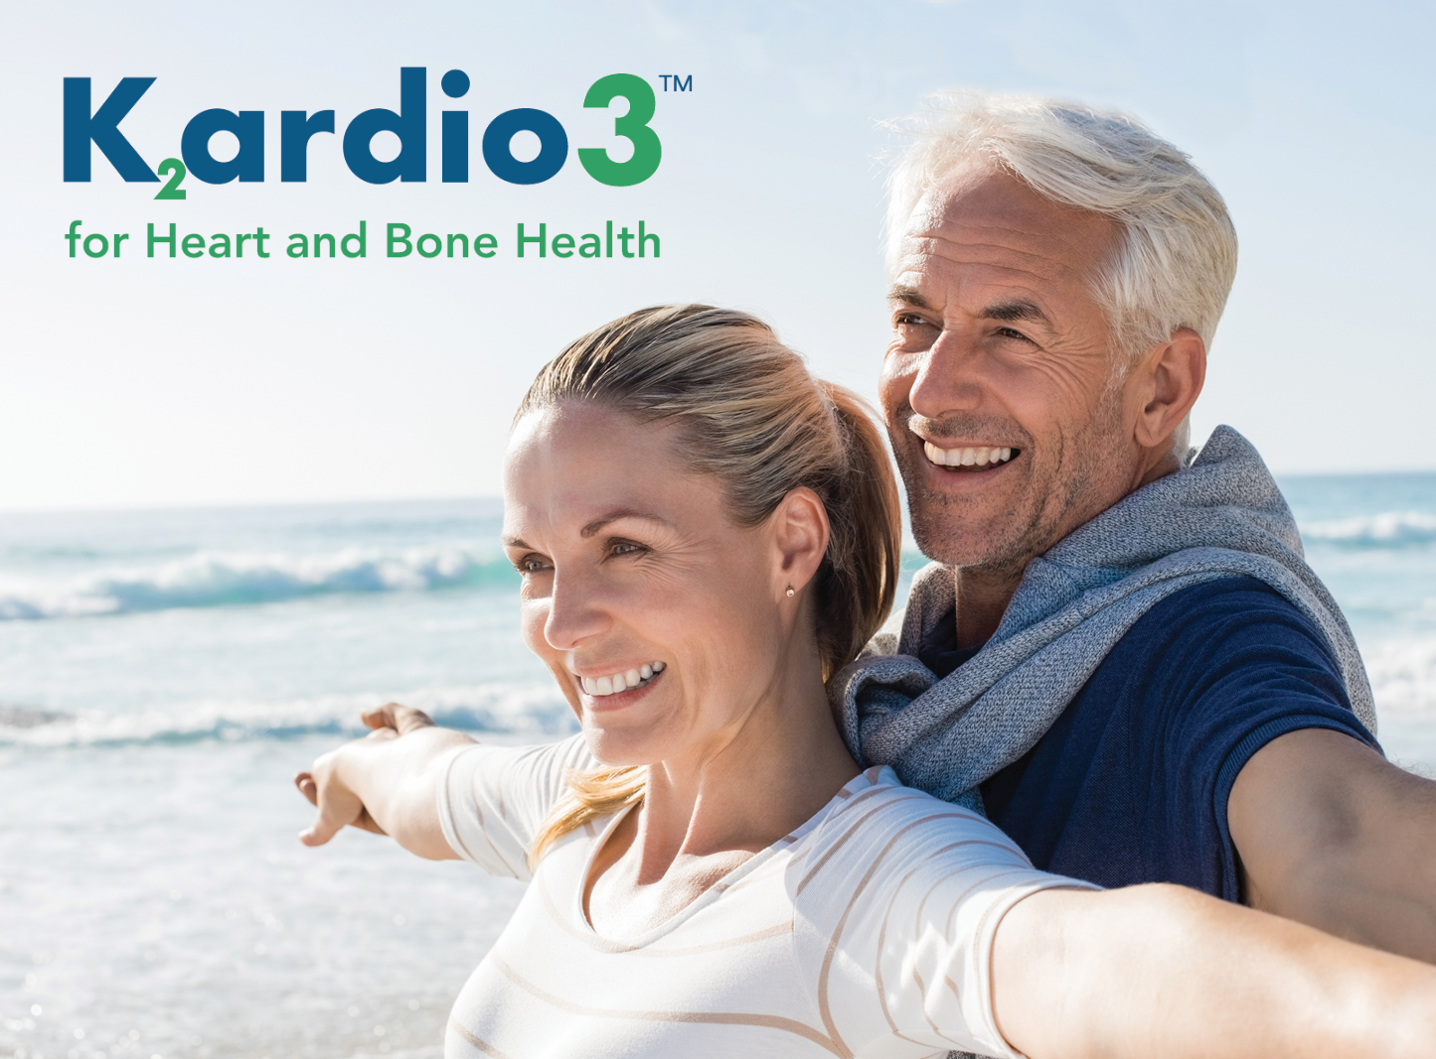 Kardio3 blend with Omega-3, Vitamin K2 and Phytosterols